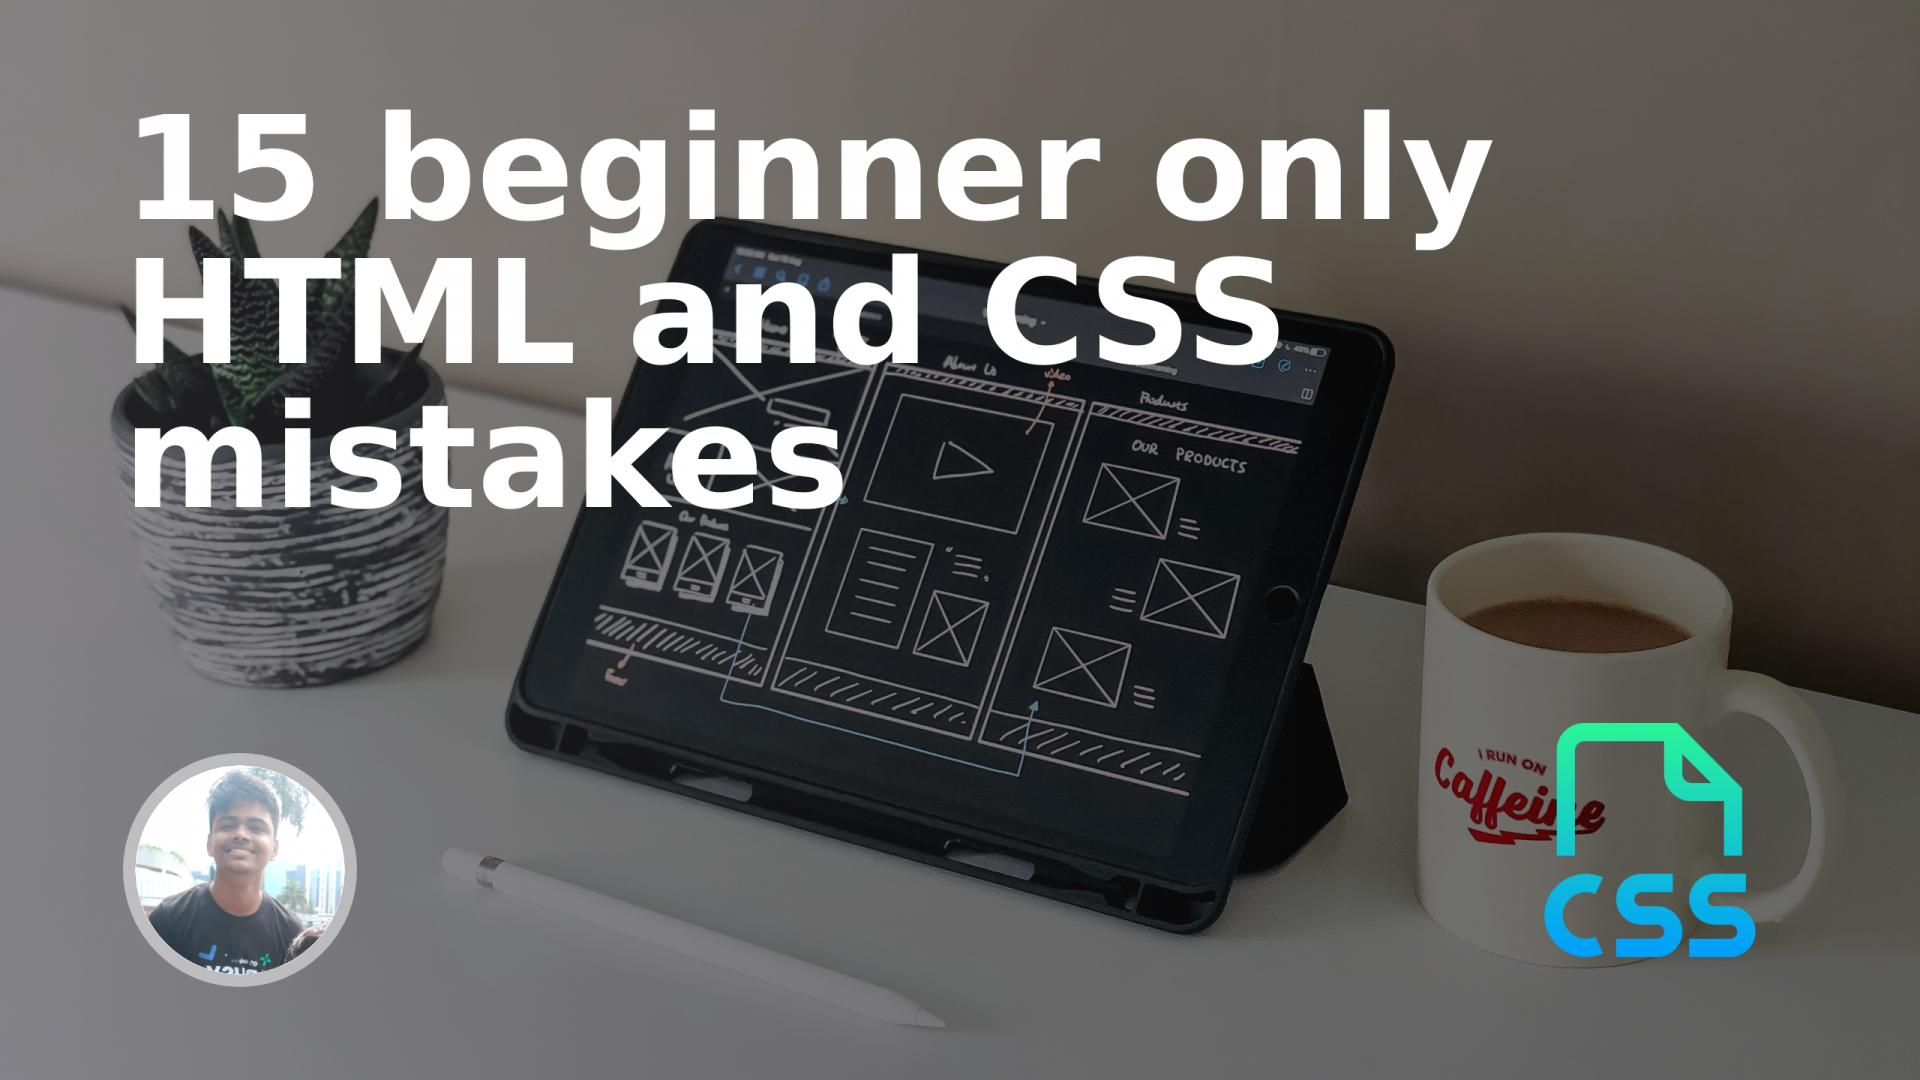 15 beginner only HTML and CSS mistakes